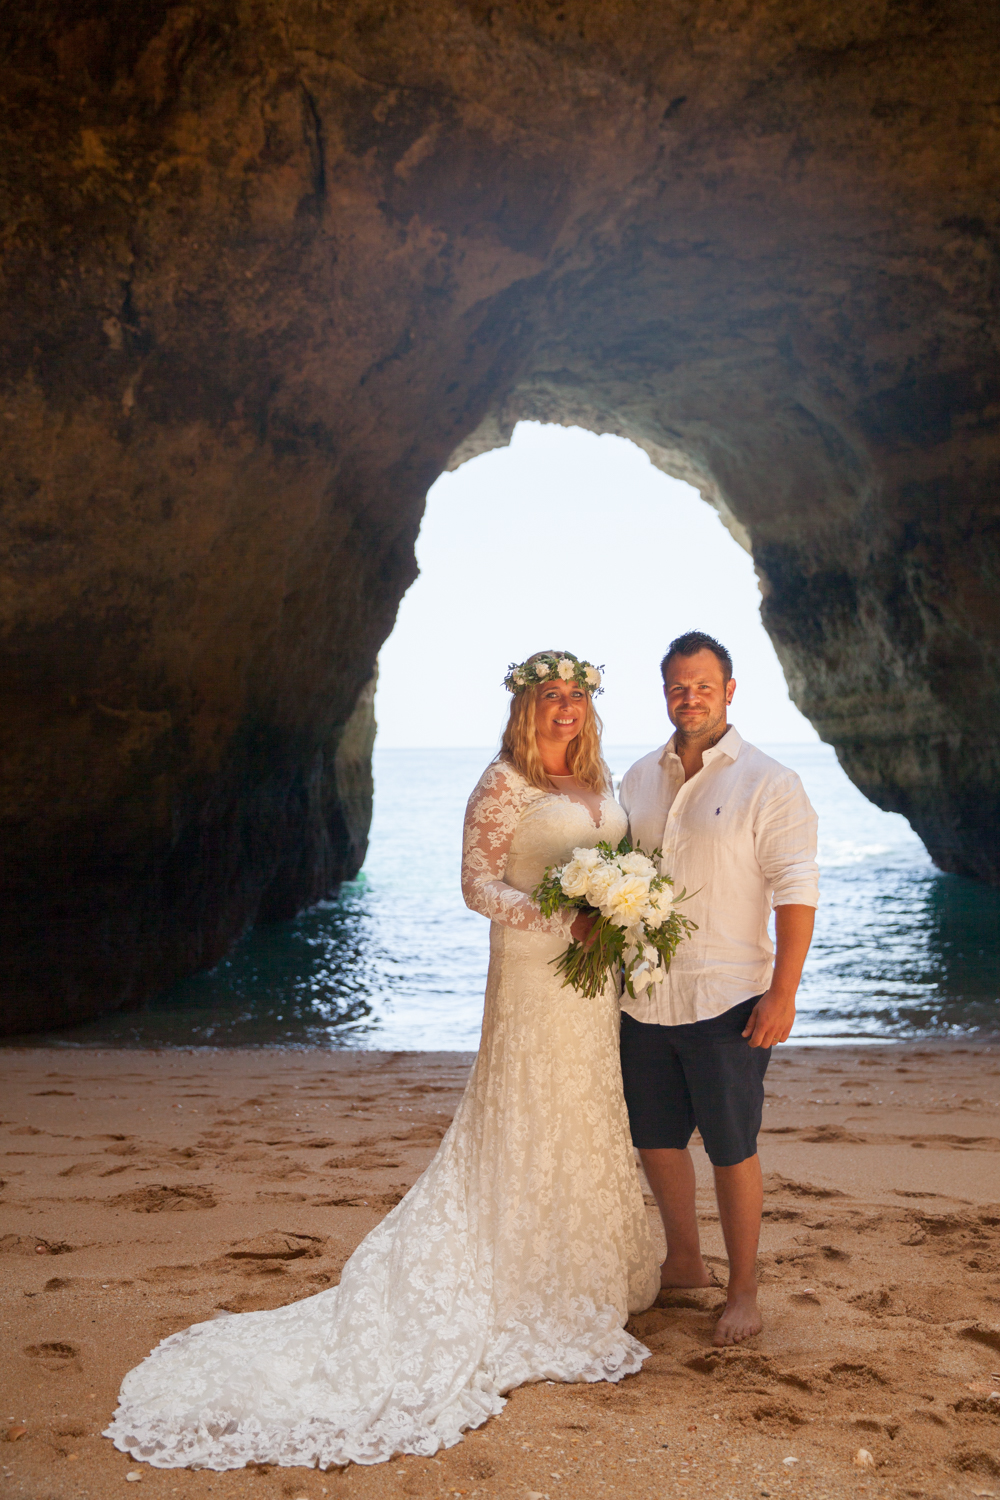 WEDDING_PORTUGAL_NOSOLOAGUA_CAVE_PICTORIAL_BERWICK-2337.jpg